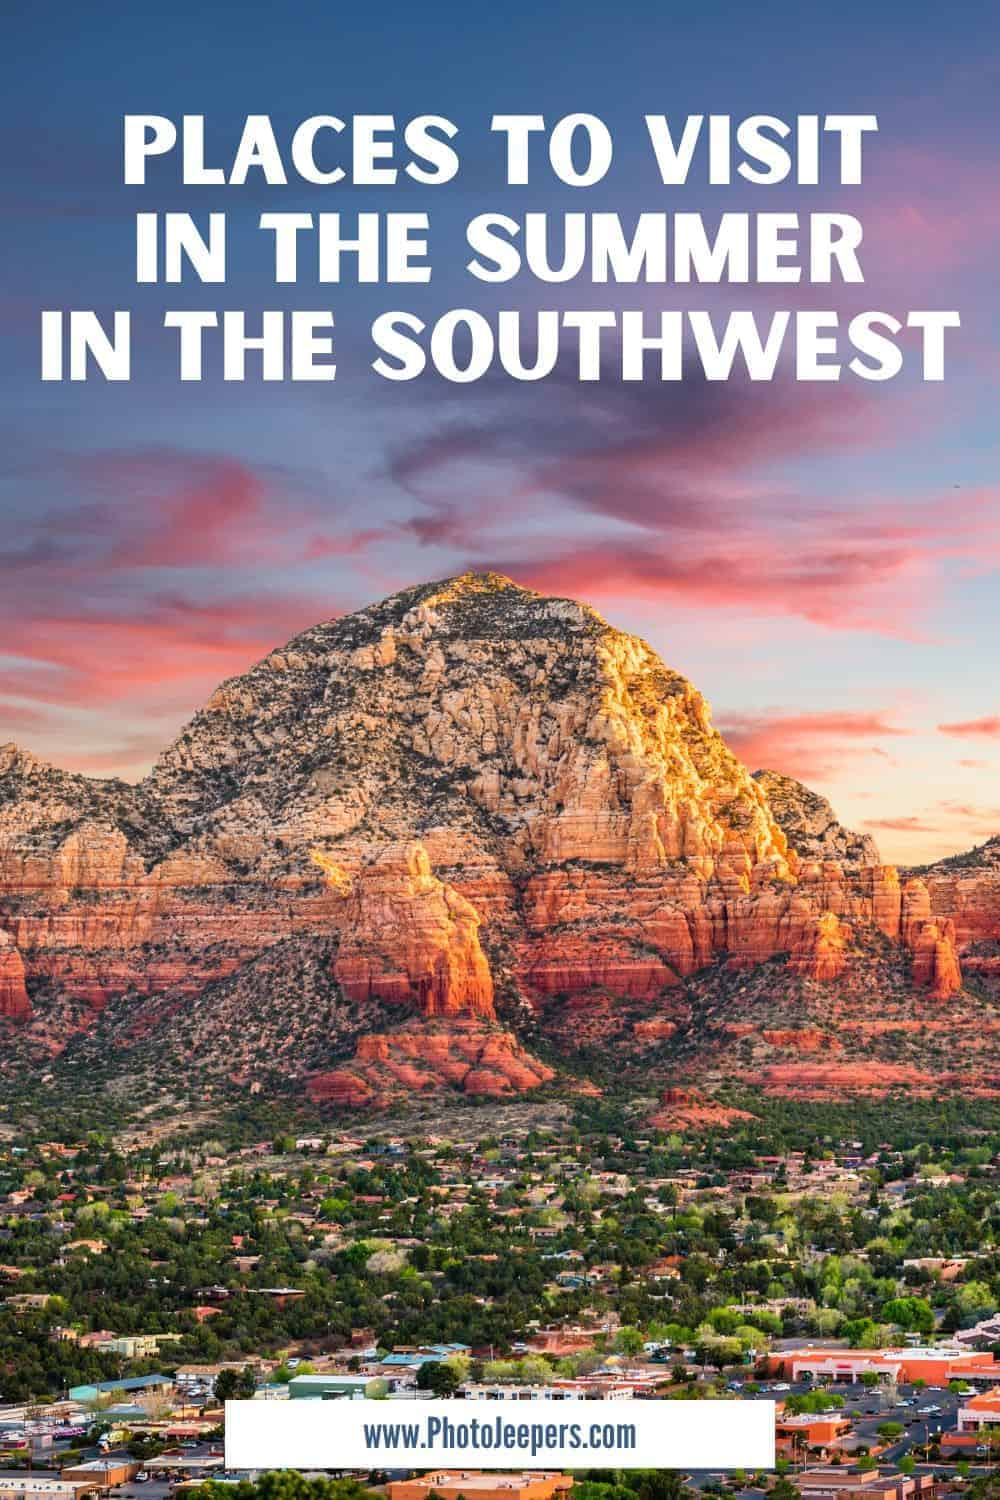 Places to Visit in the Summer in the Southwest